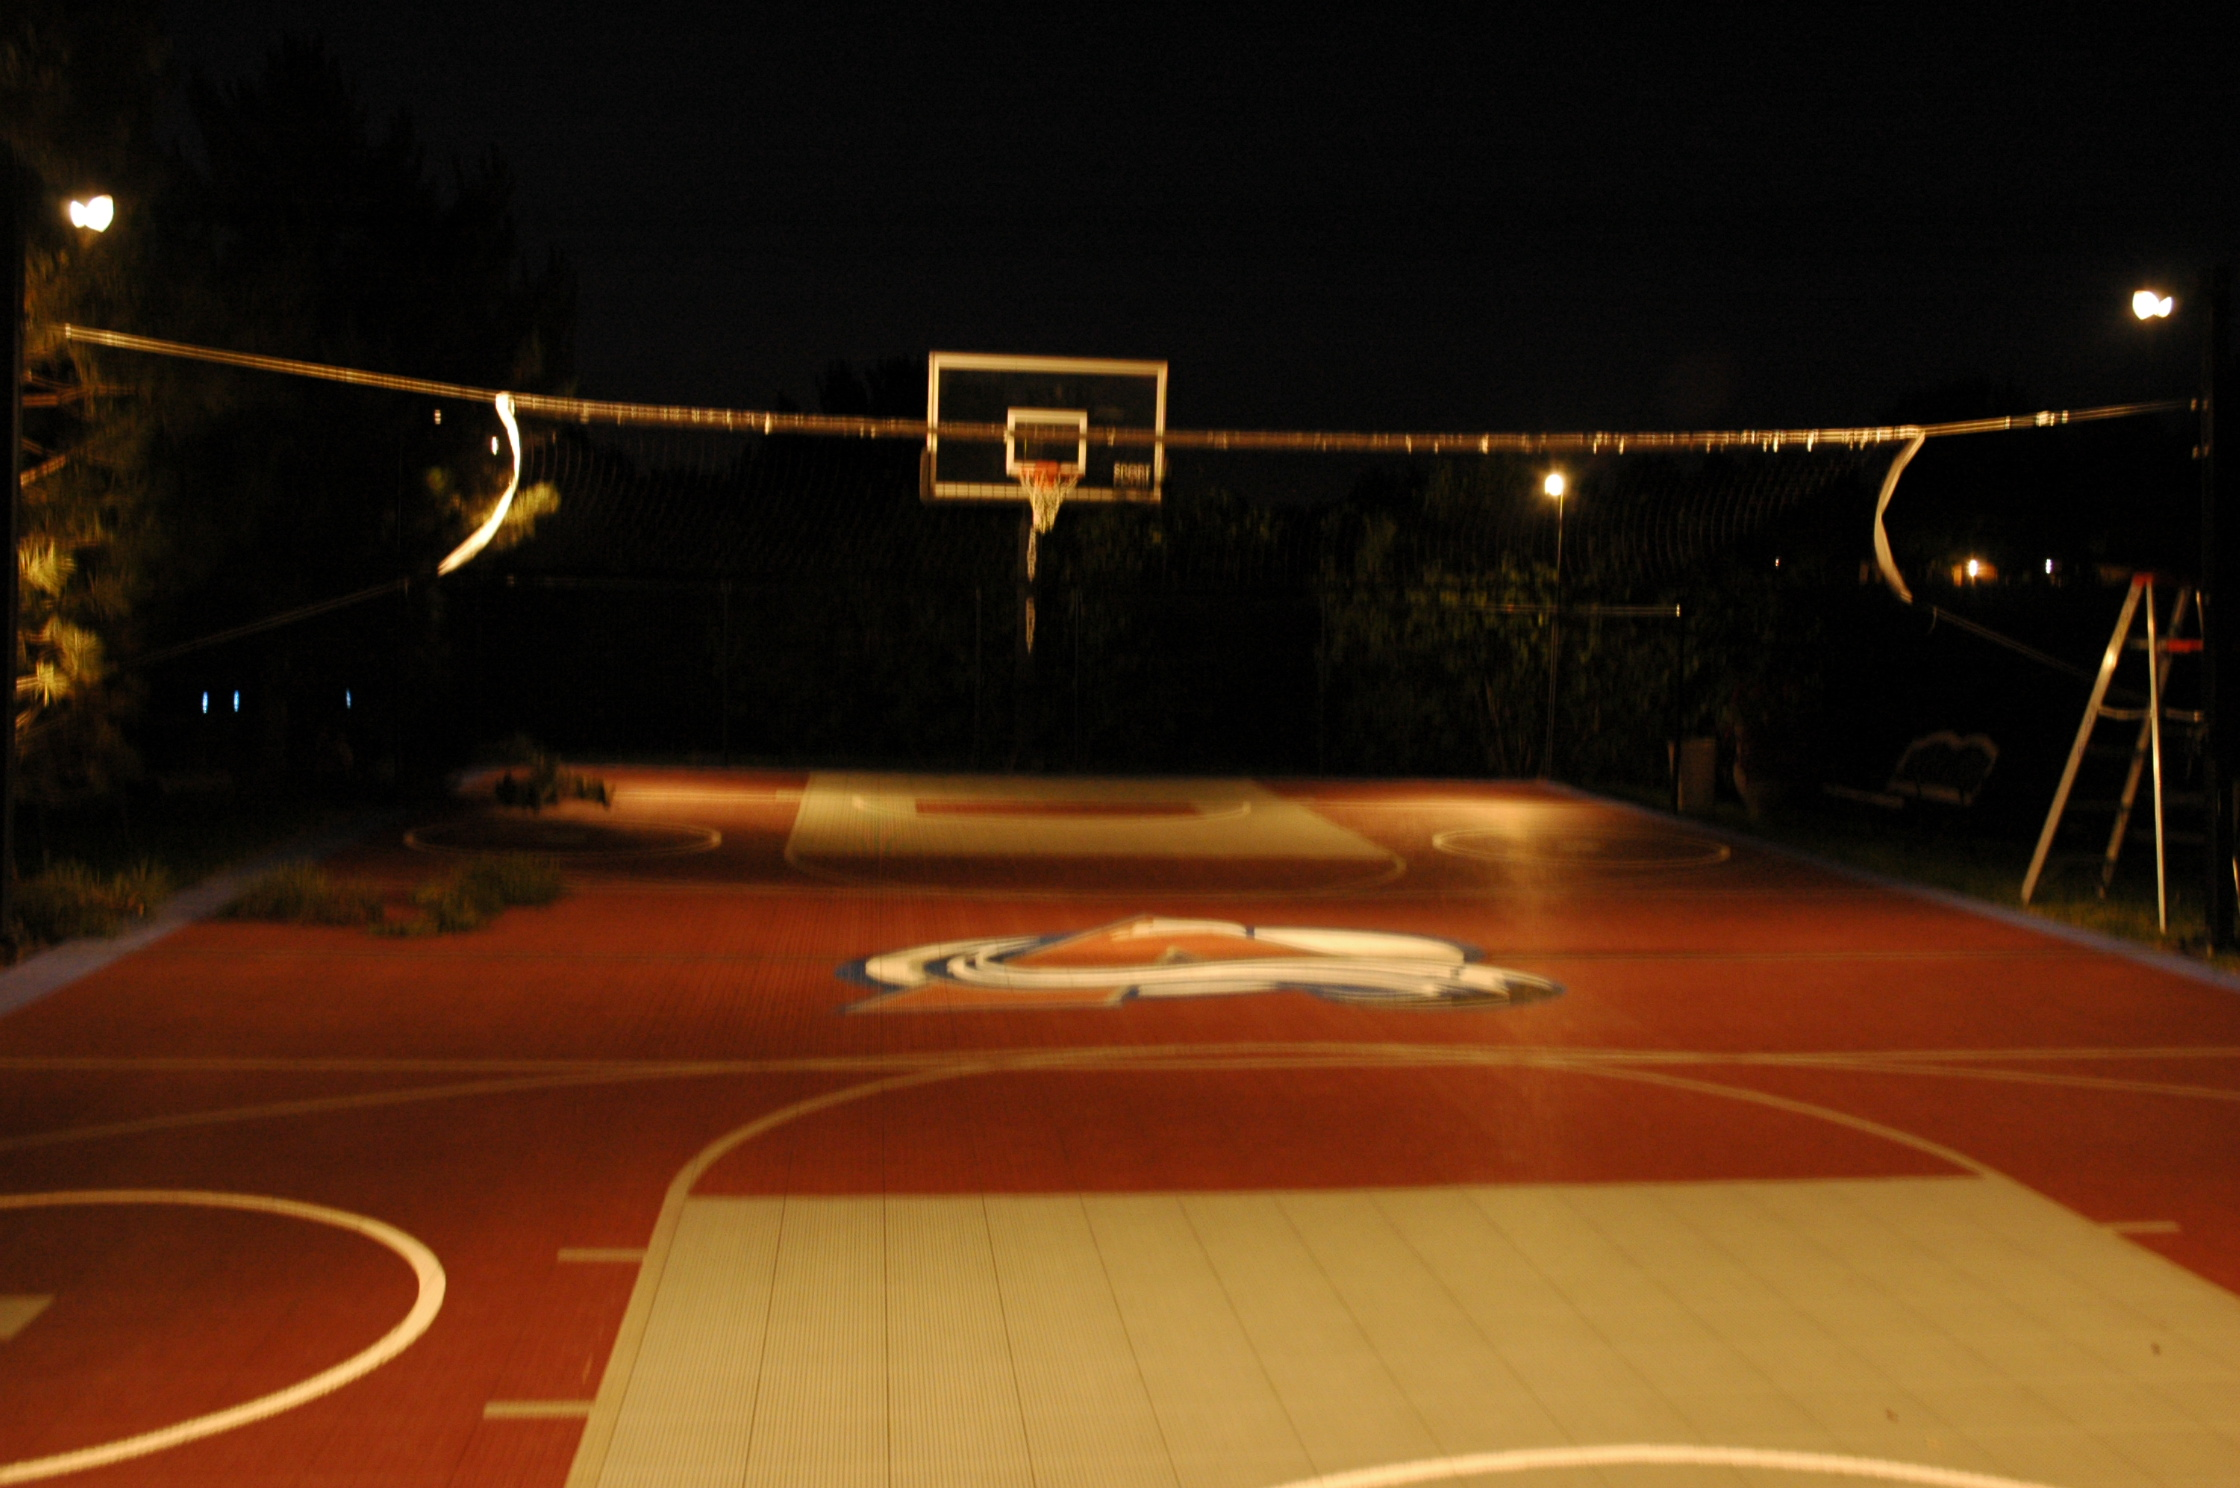 Sport Game Court Low Voltage Lighting - Greenwood Village. Colorado residents are very active, so it is inevitable that a significant portion of their gardens and landscaping may in fact be dedicated to sports activities. In many communities along the Colorado front range (Greenwood Village, Cherry Hills Village), line voltage lighting cannot be used to illuminate sport-game courts. However, low voltage lighting is permissible as long as the lighting is turned off when the court is not being used. At this sport-game court in Greenwood Village, a total of six of Outdoor Lighting Perspectives' copper (painted black) BB-01, 35W quartz halogen lighting fixtures were used to effectively illuminate the court for nighttime competition.